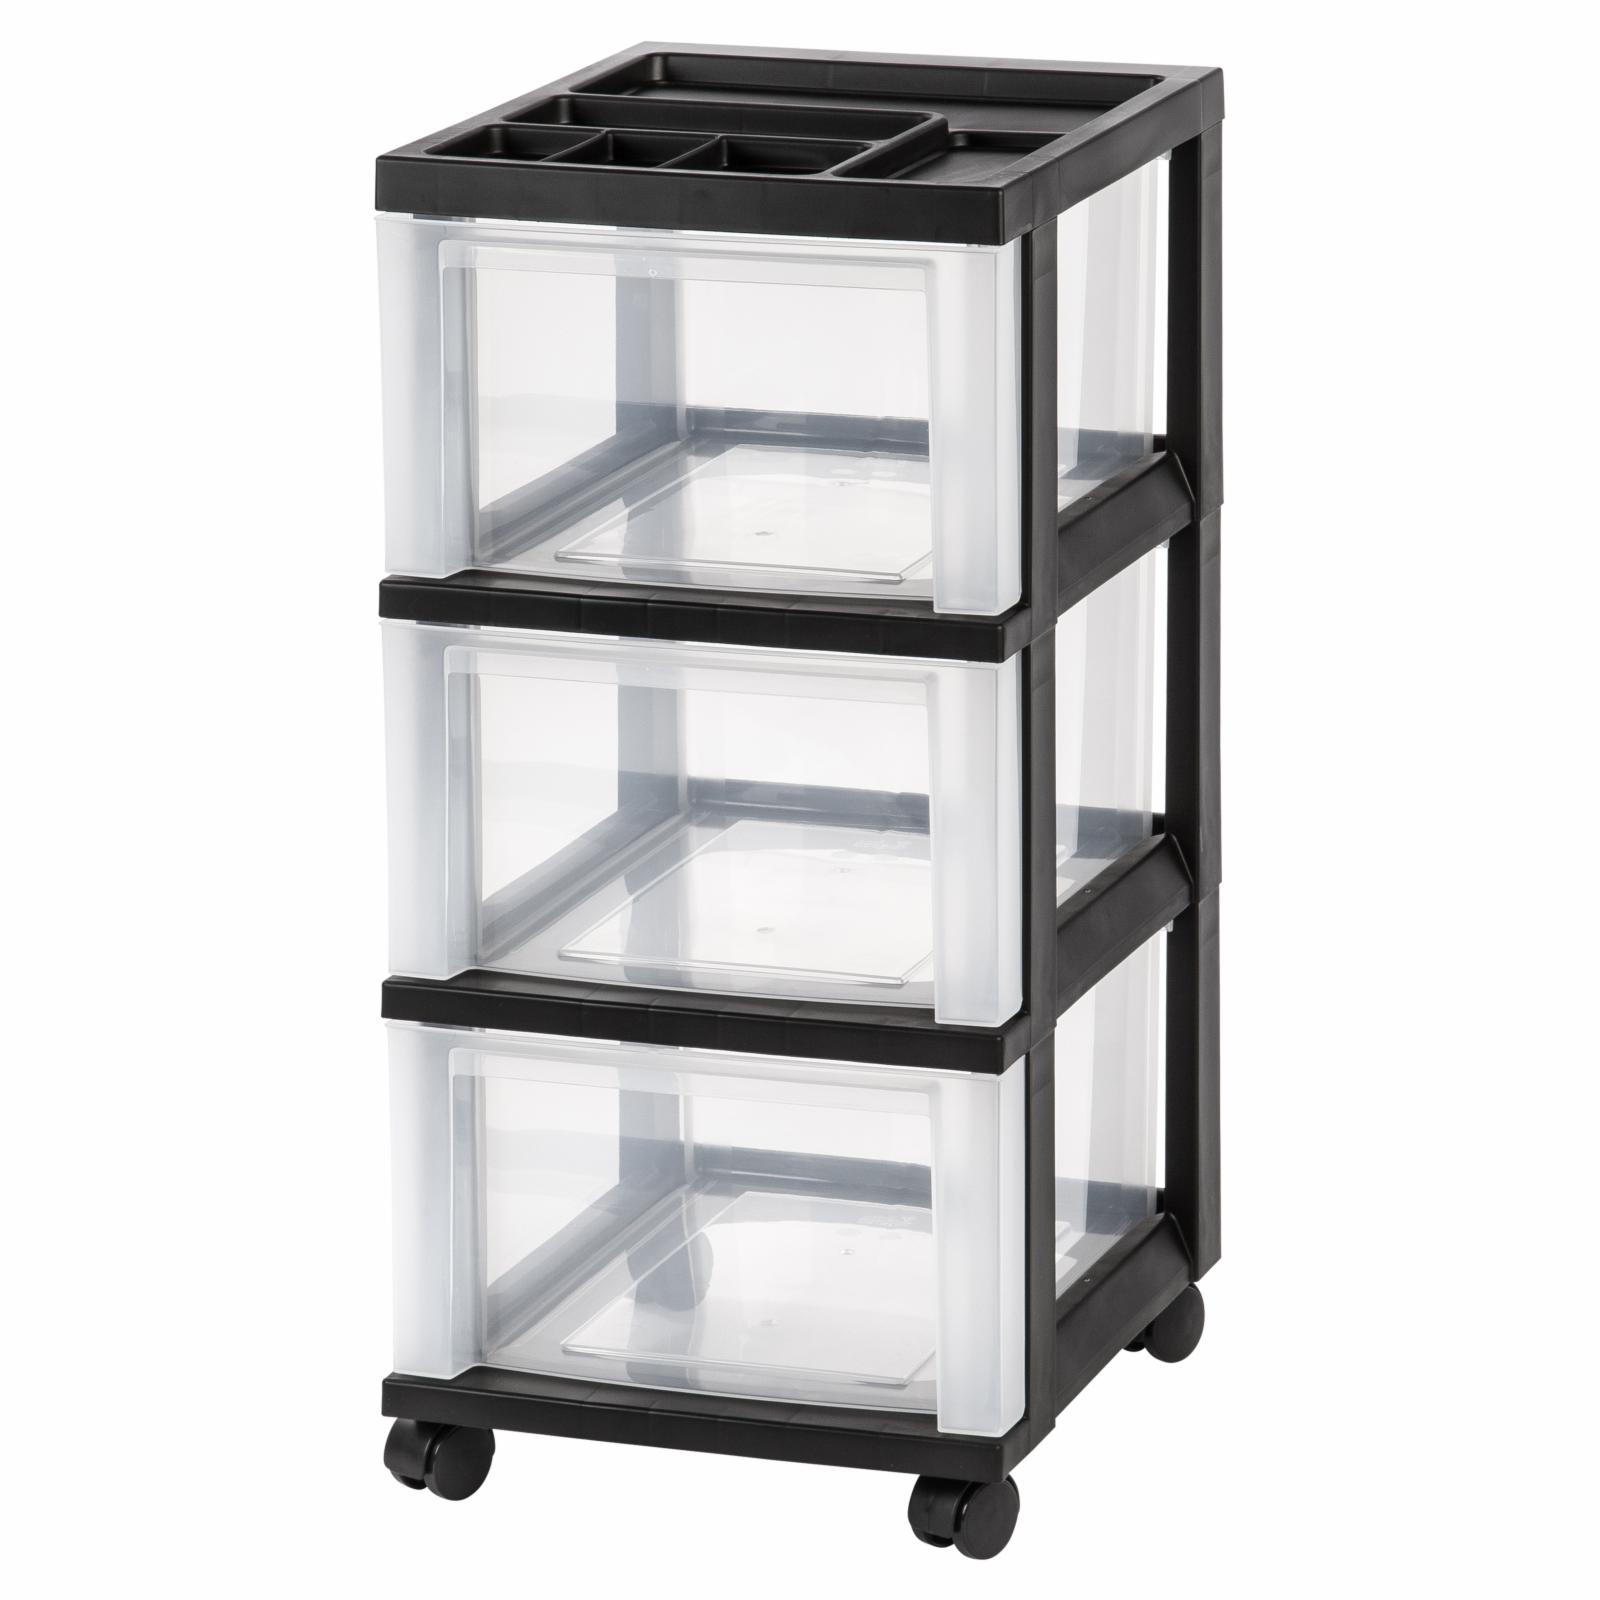 Iris USA Drawer Storage Cart with Casters Black - 116833